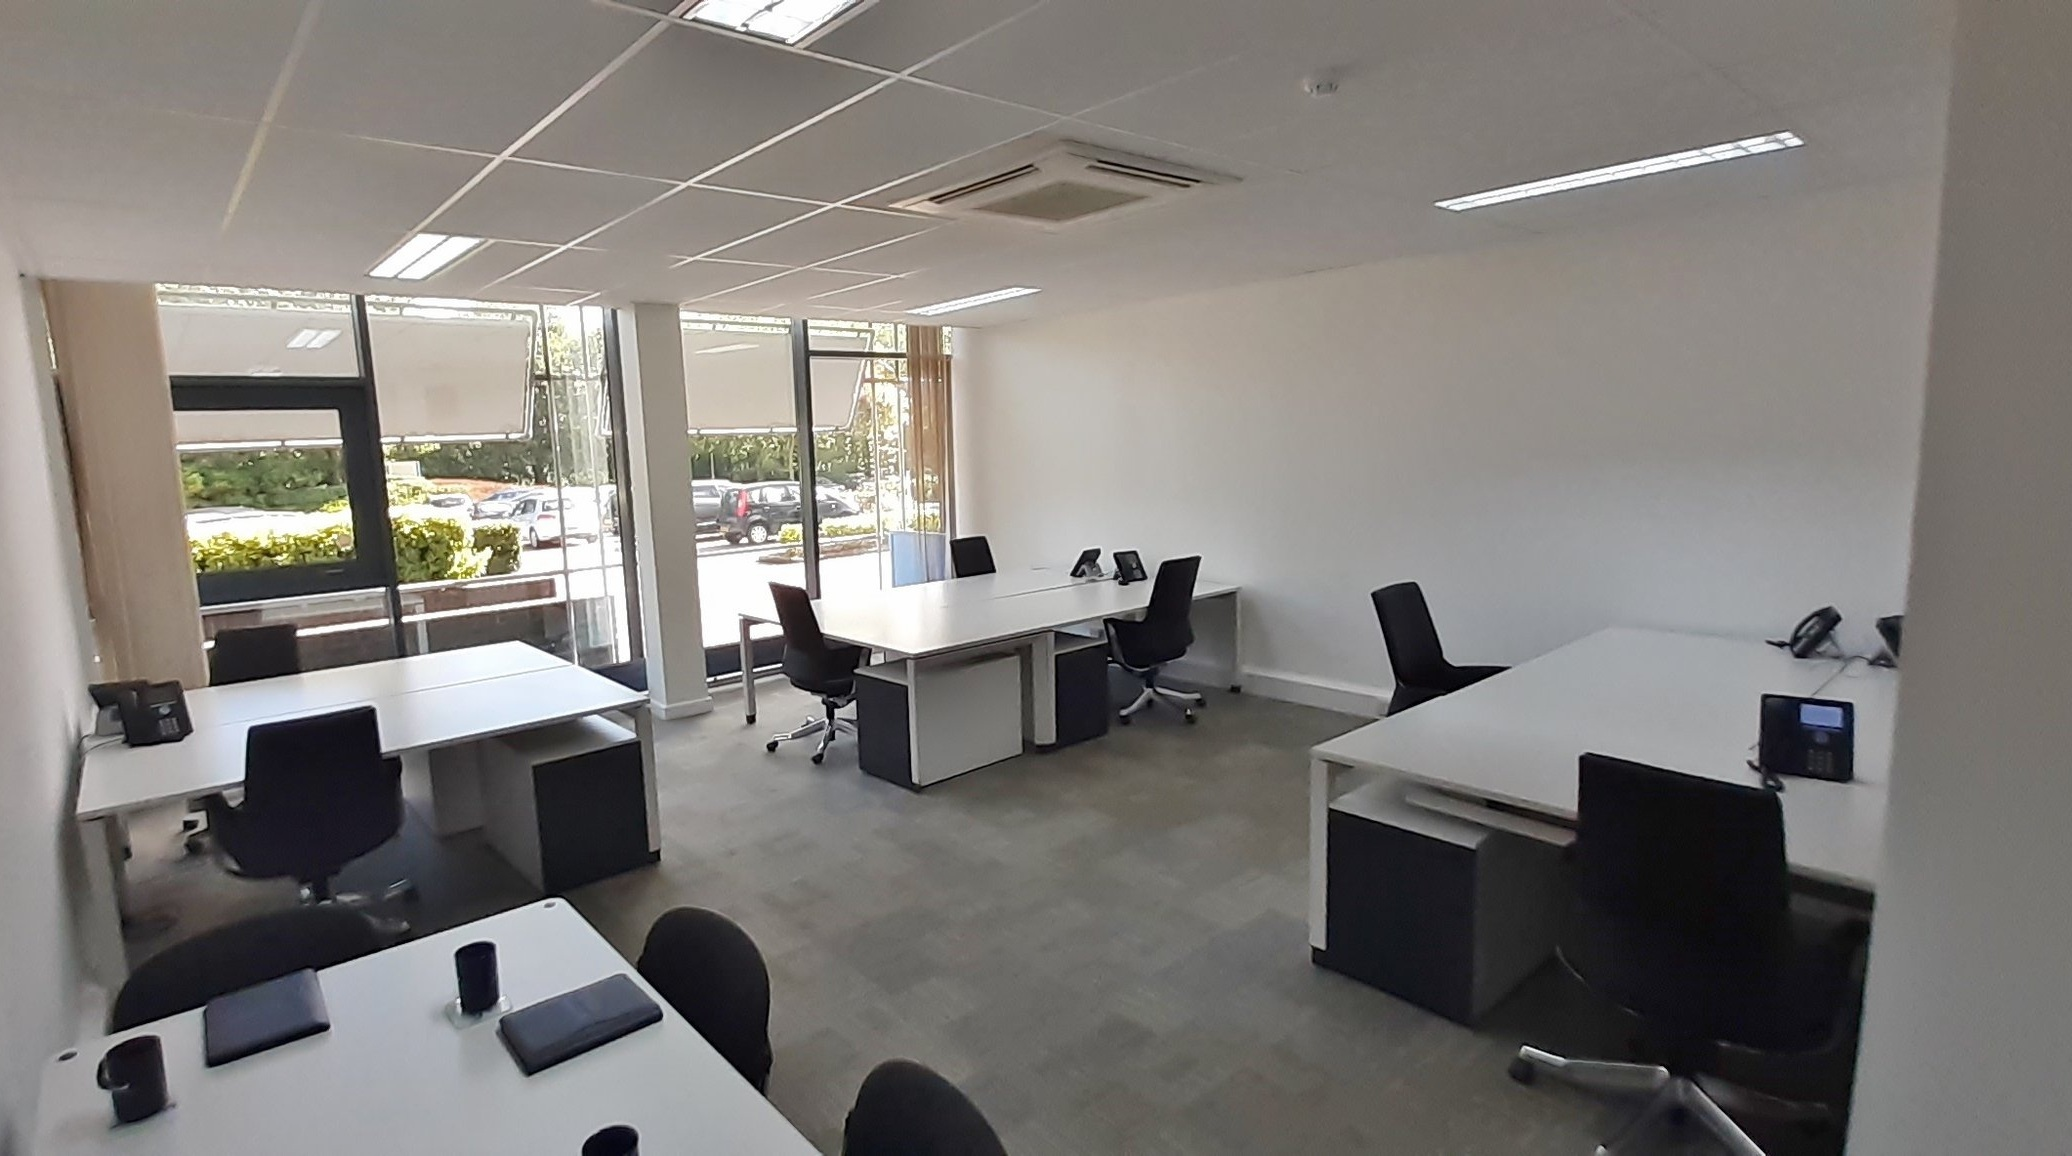 Suite G.03 - An accessible 8-12 desk office located on the ground floor complete with air conditioning and views out of the front of the building.Desk Capacity: 8-12Size: 601 sqftMonthly price: Contact usIncluded: See what is included in the price here.